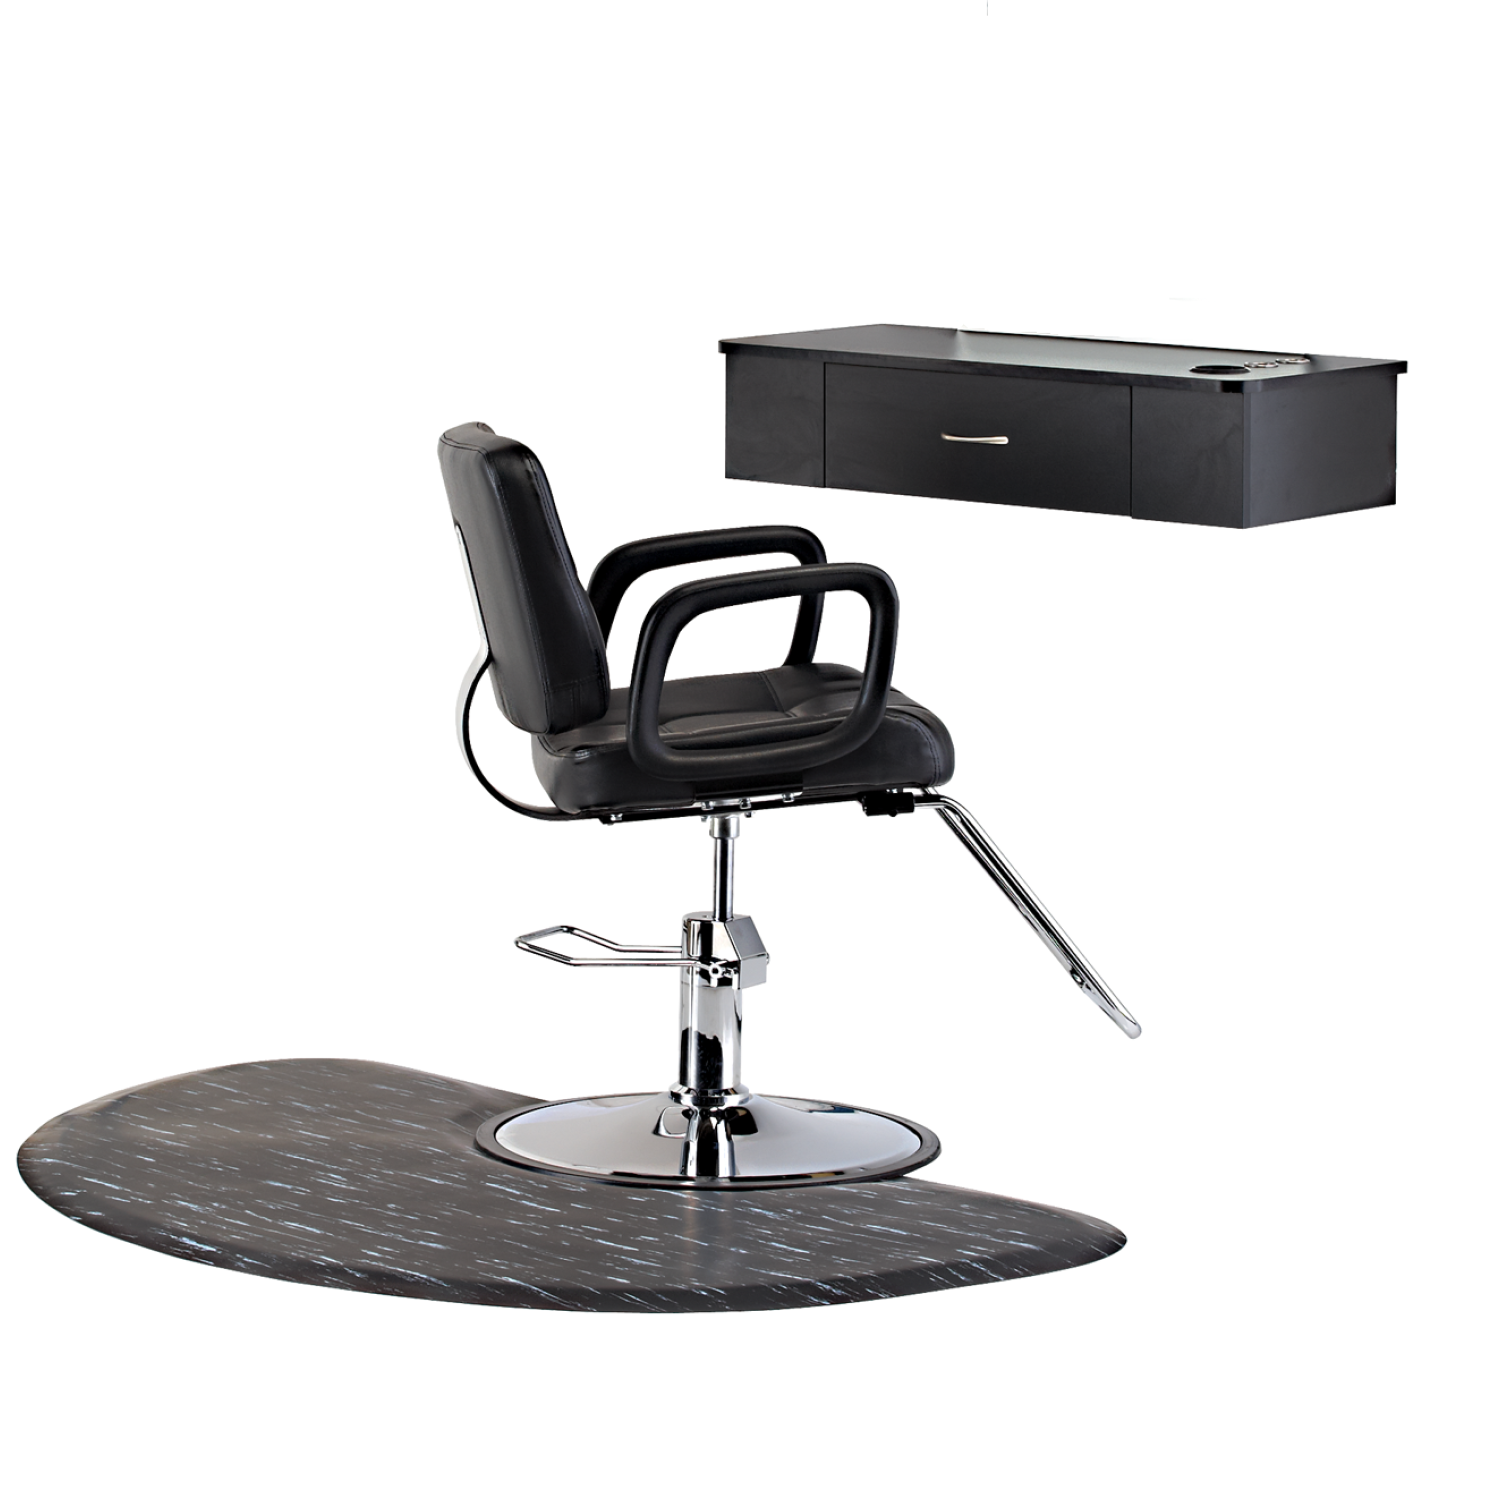 black station package with half circle floor mat at sally beauty